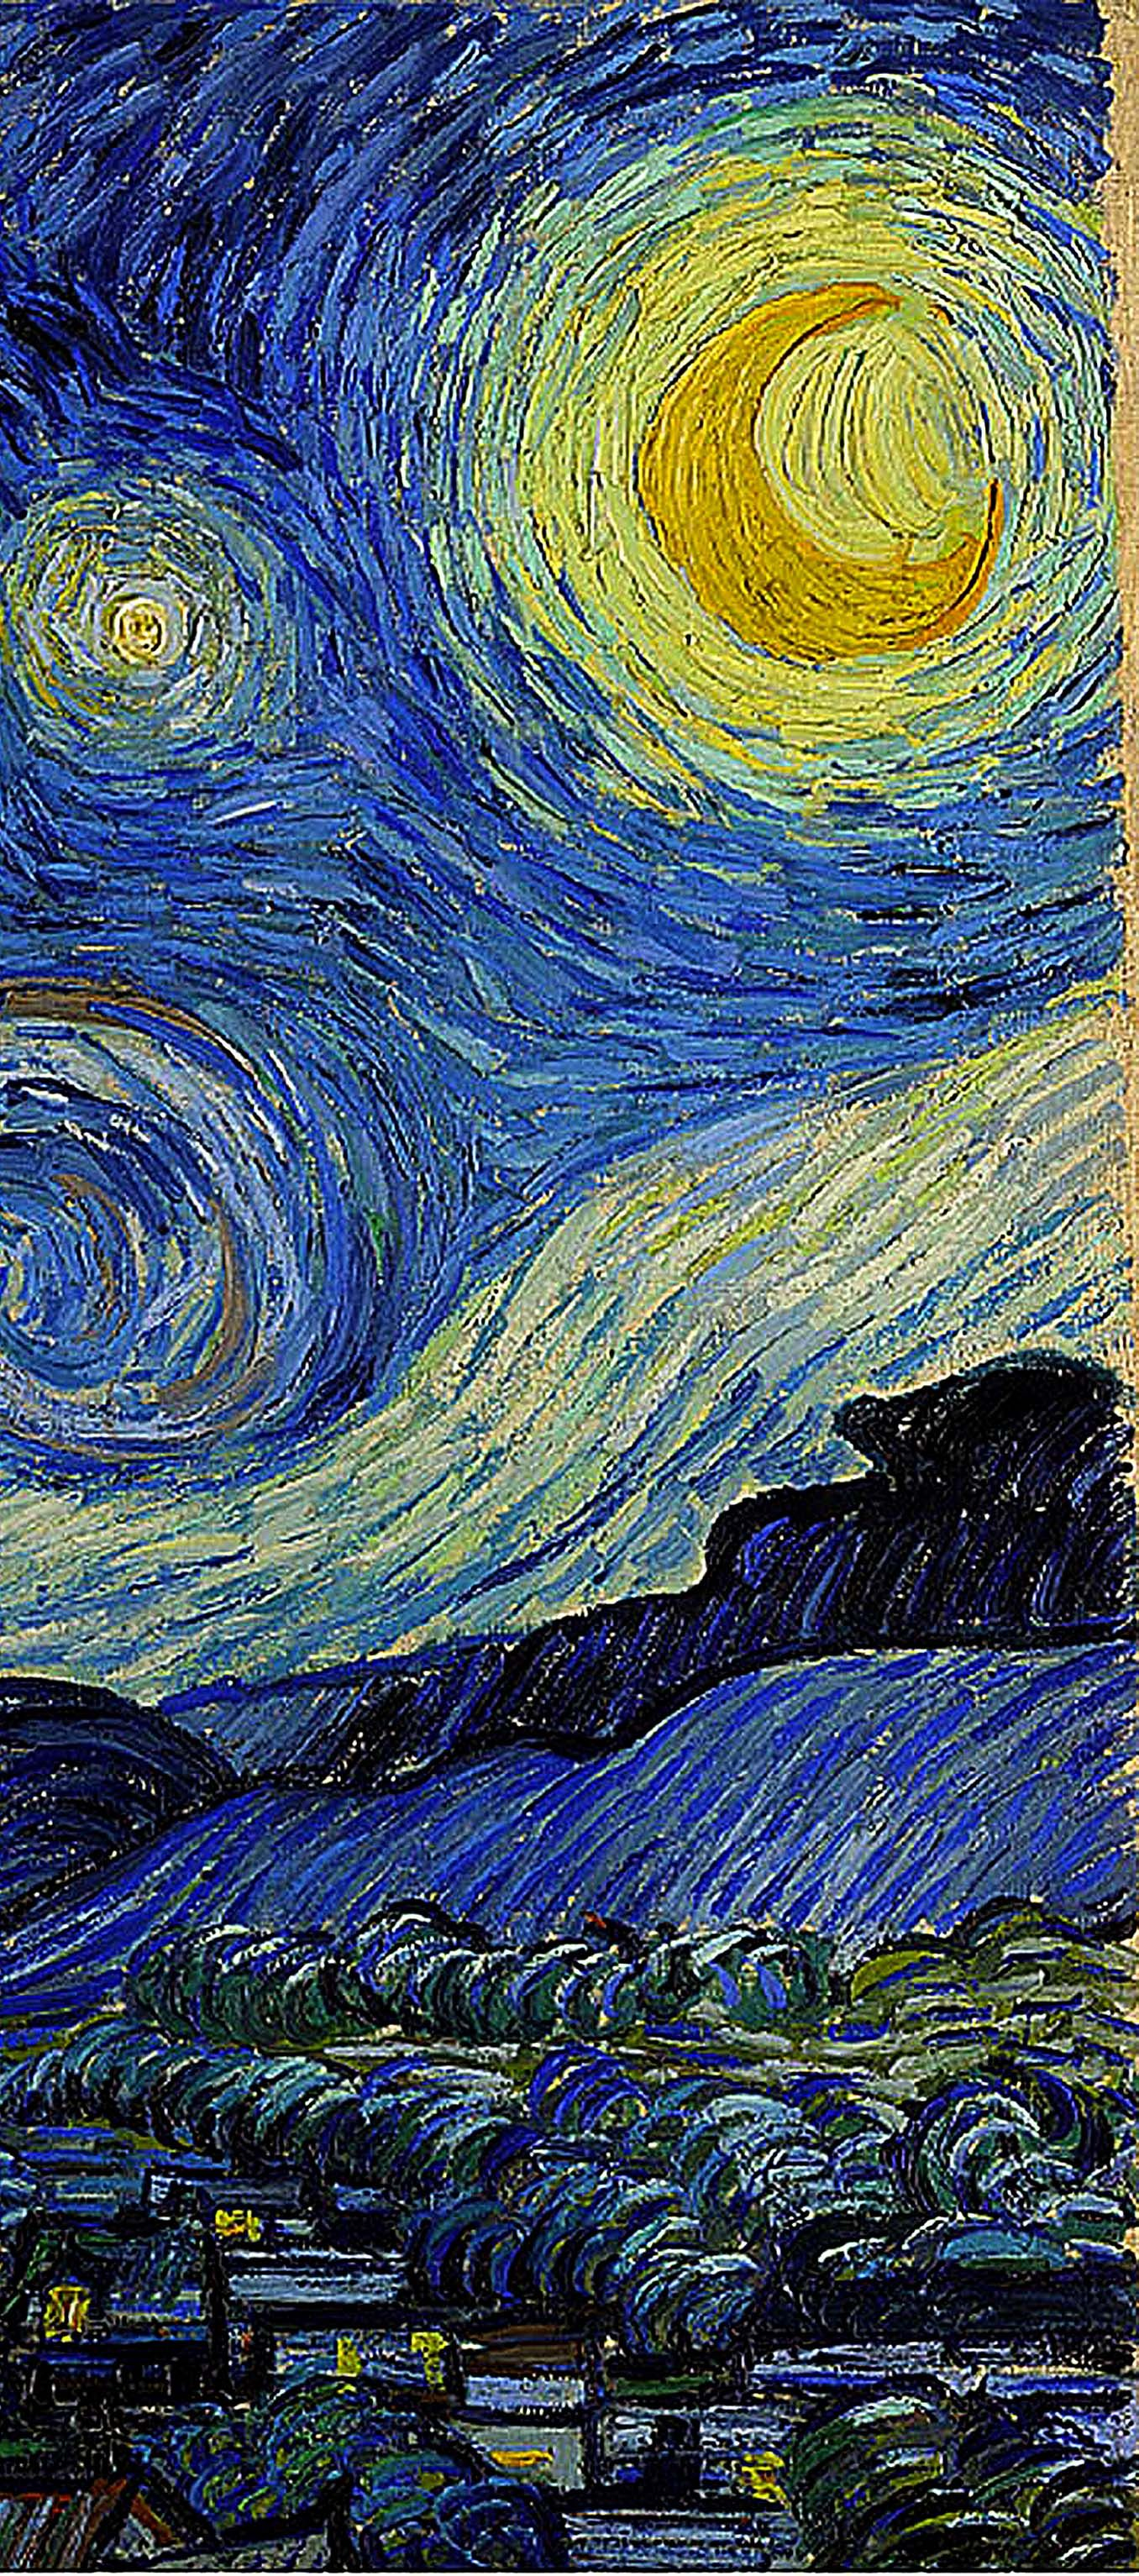 'Starry Night' detail 1889 Vincent van Gogh Art